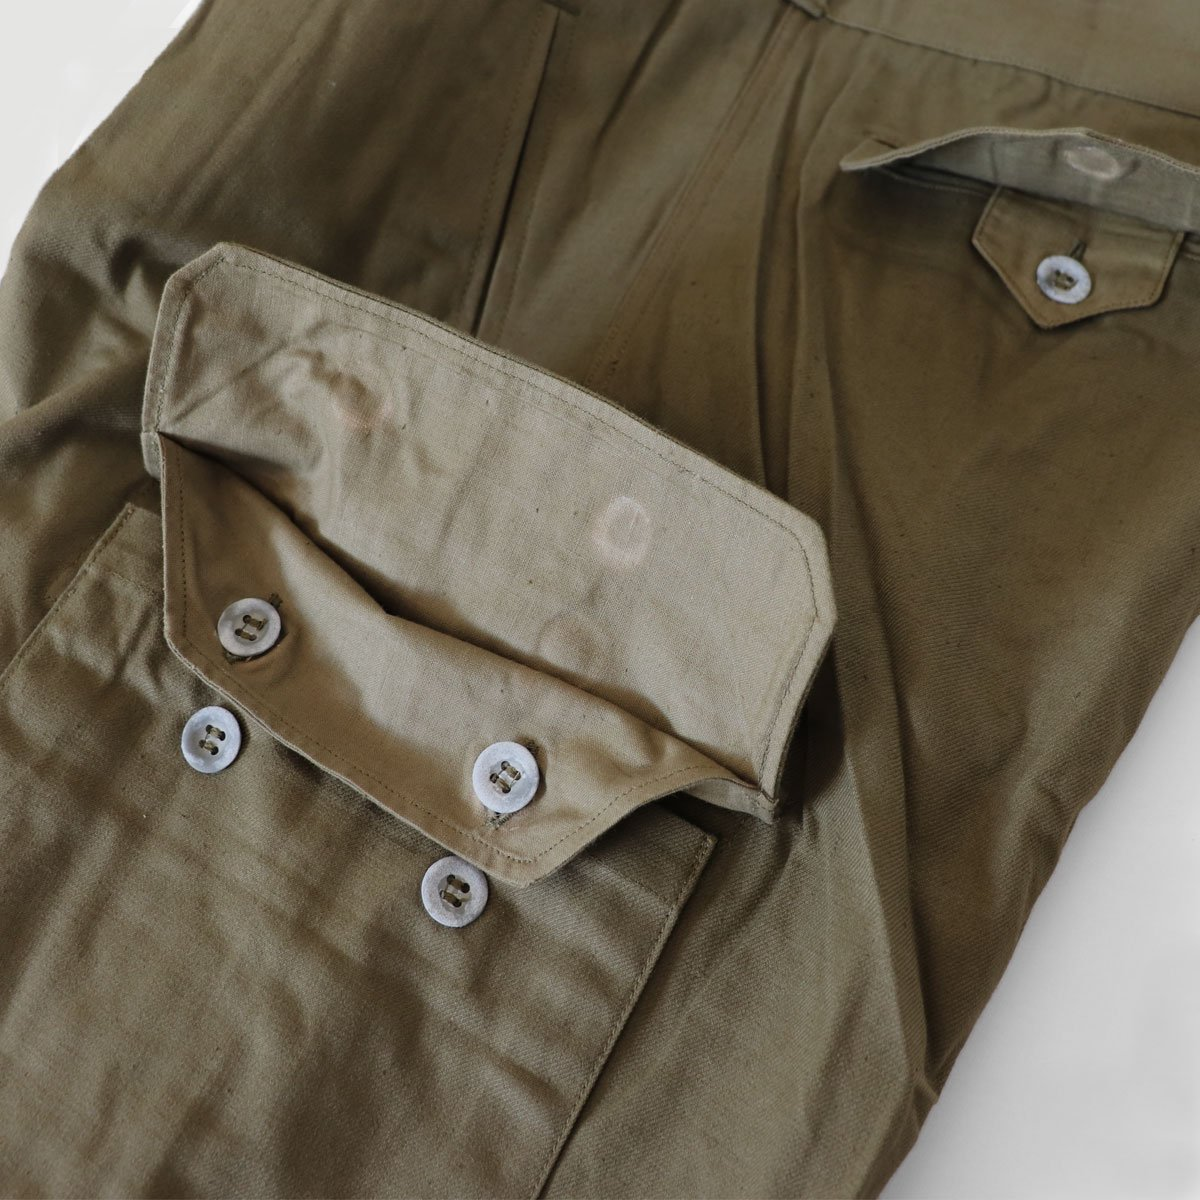 FRENCH ARMY M47 PANTS 詳細画像4